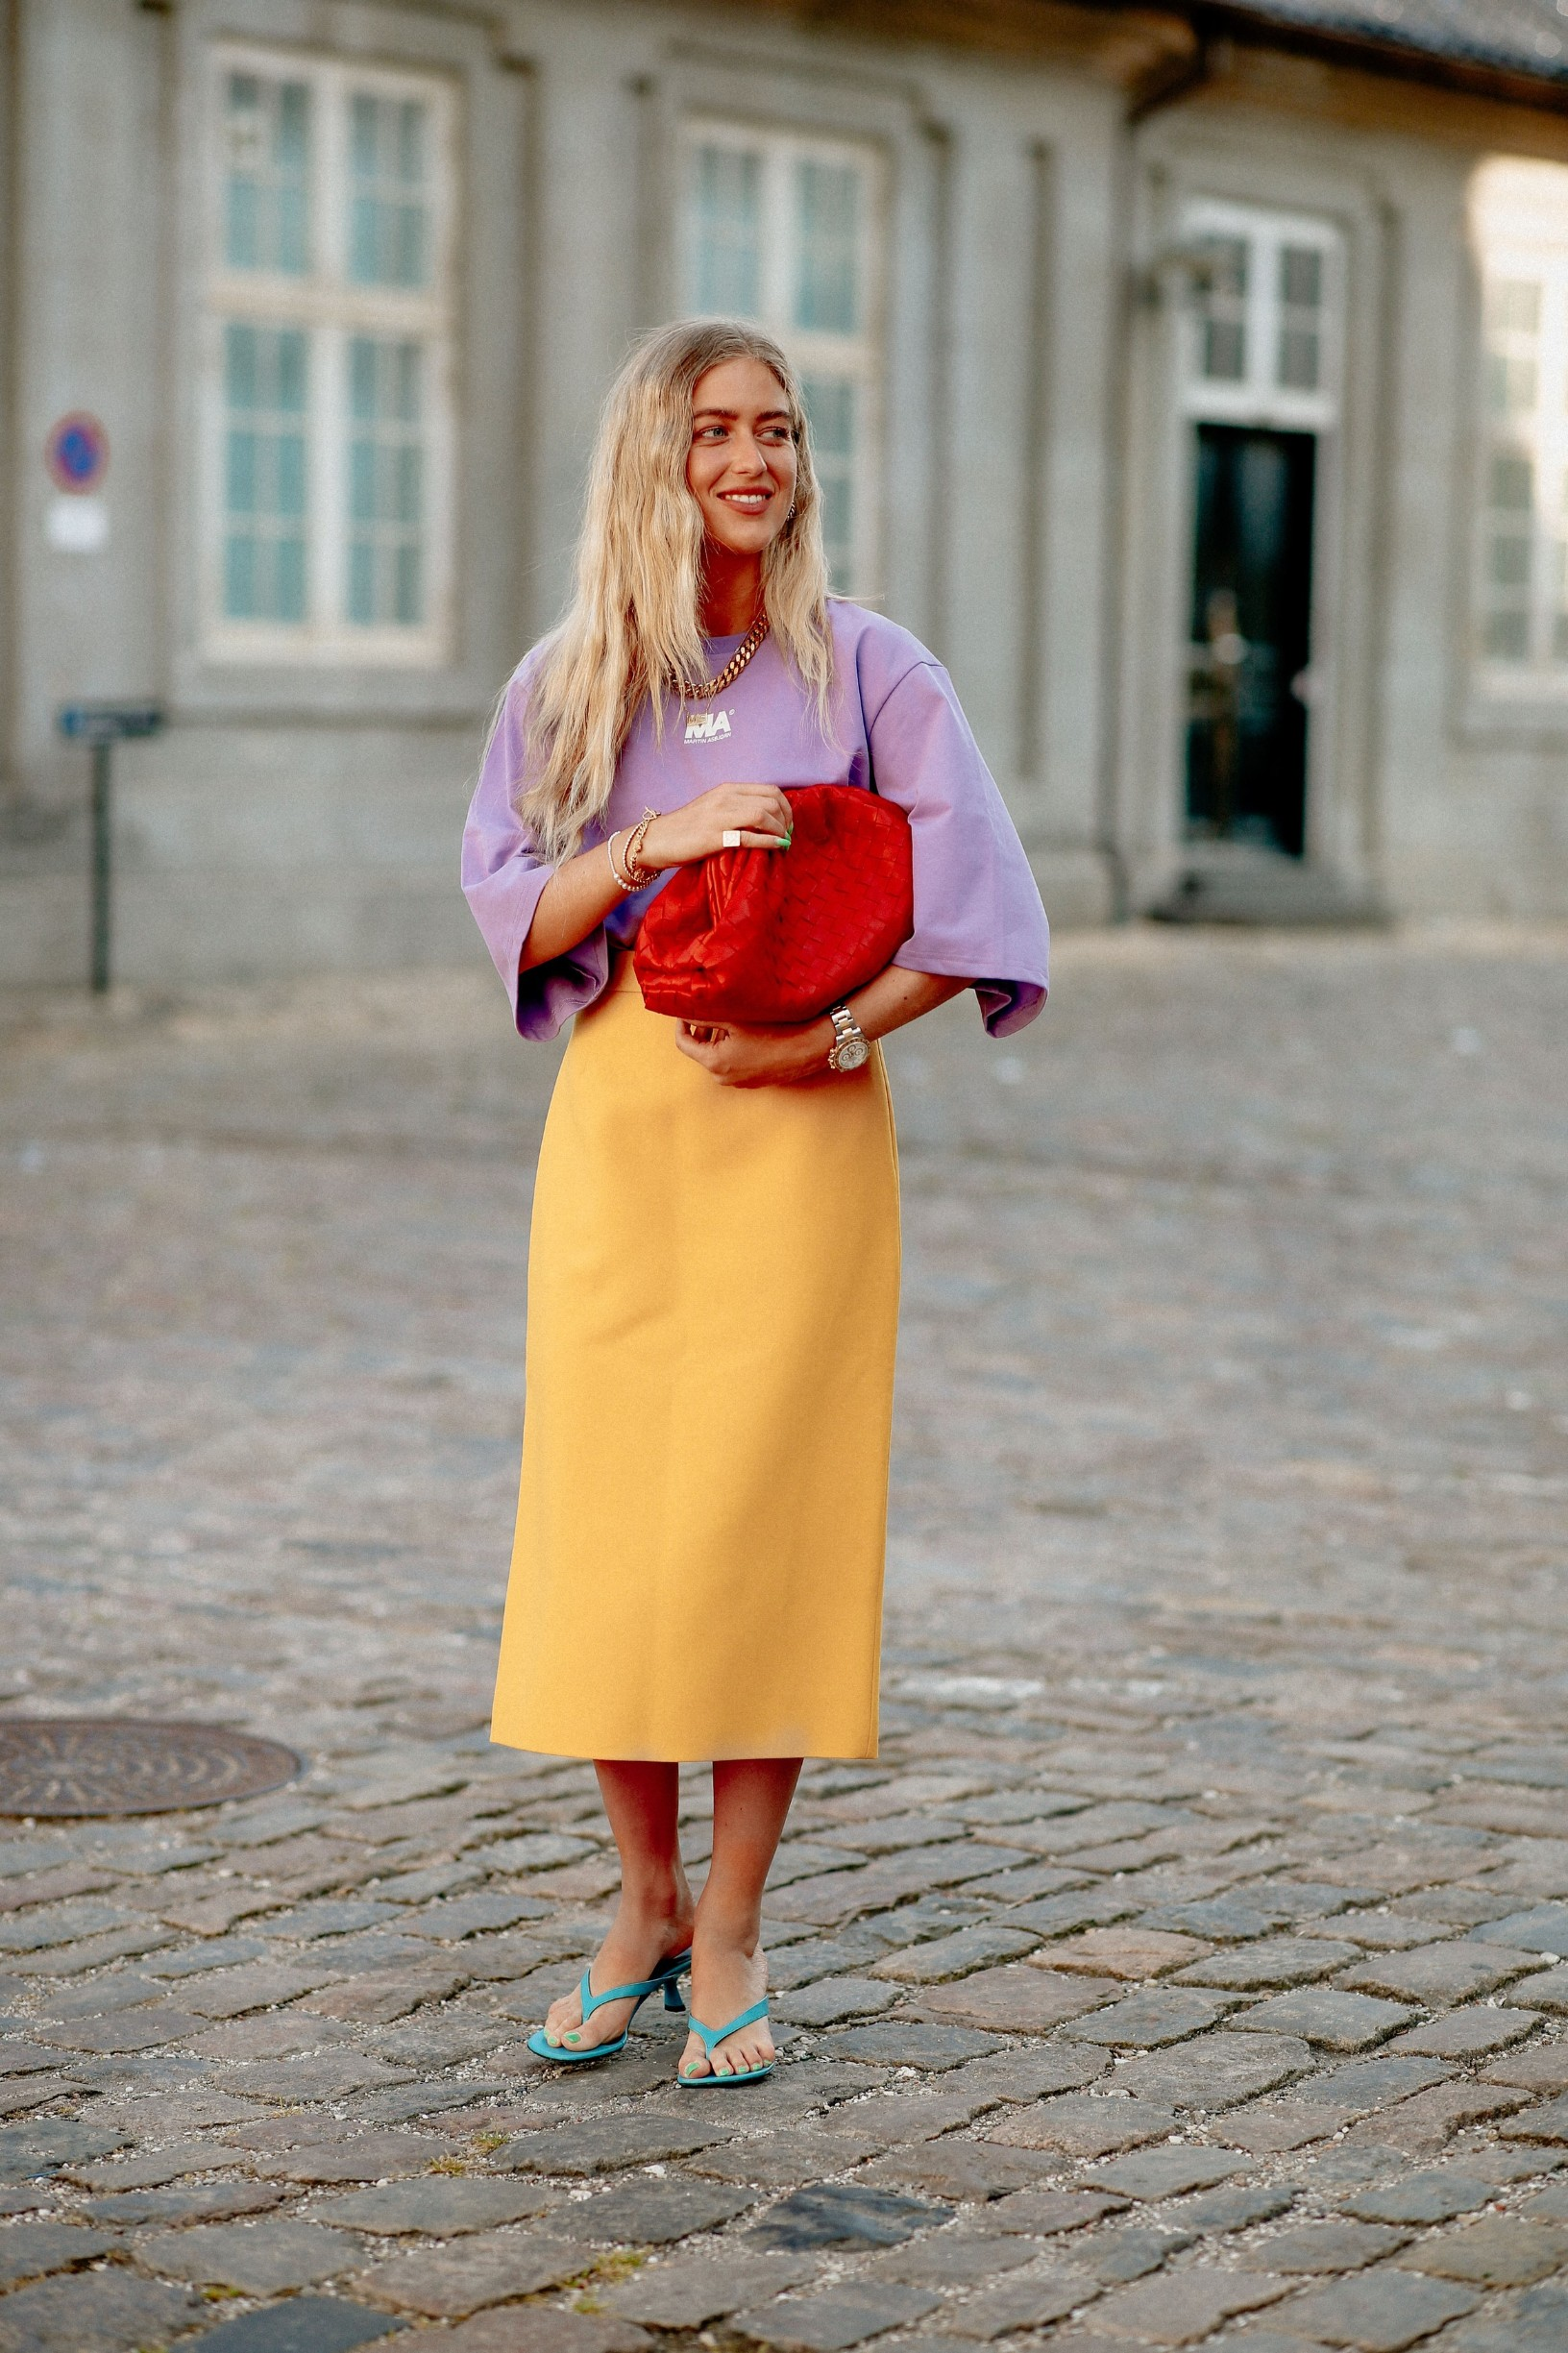 Street style, Emili Sindlev arriving at Selected Spring Summer 2021 show, held at Bredgade, Copenhagen, Denmark, on August 12, 2020.,Image: 554929929, License: Rights-managed, Restrictions: , Model Release: no, Credit line: Bertrand-Hillion Marie-Paola/ABACA / Abaca Press / Profimedia